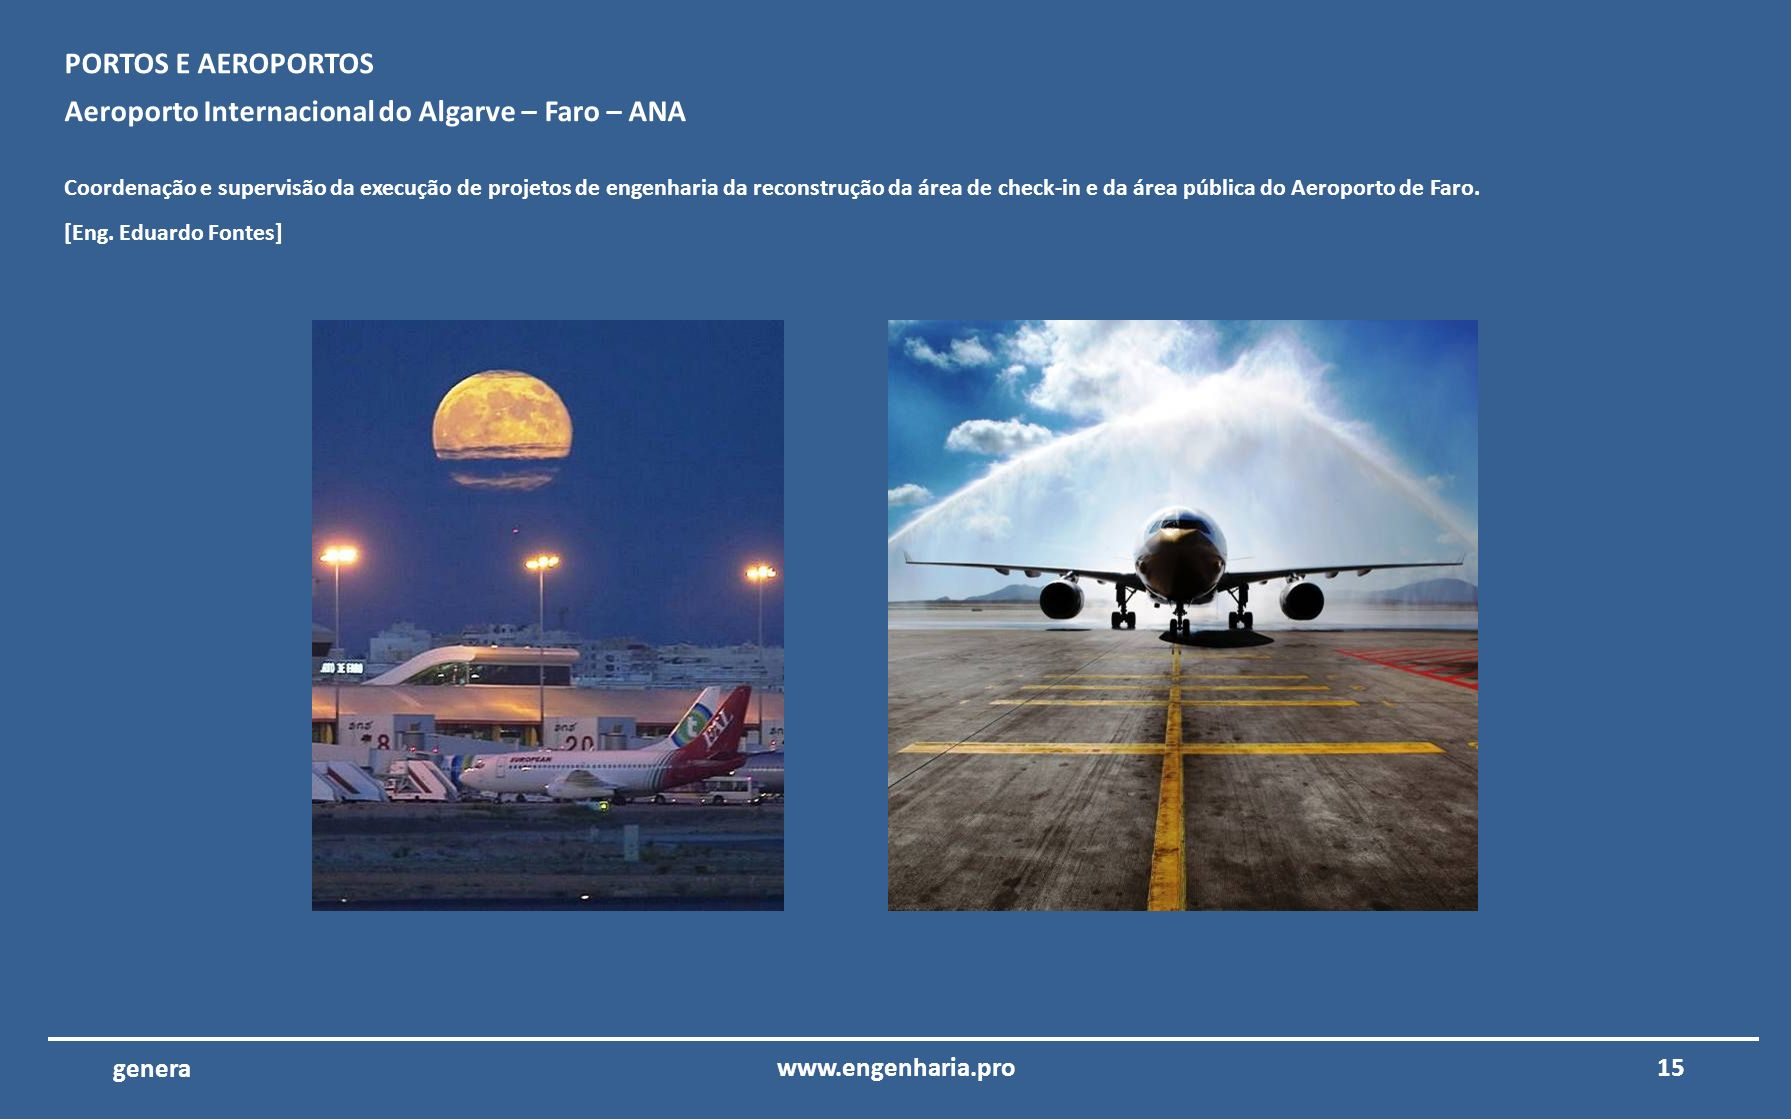 Aeroporto Internacional do Algarve – Faro – ANA